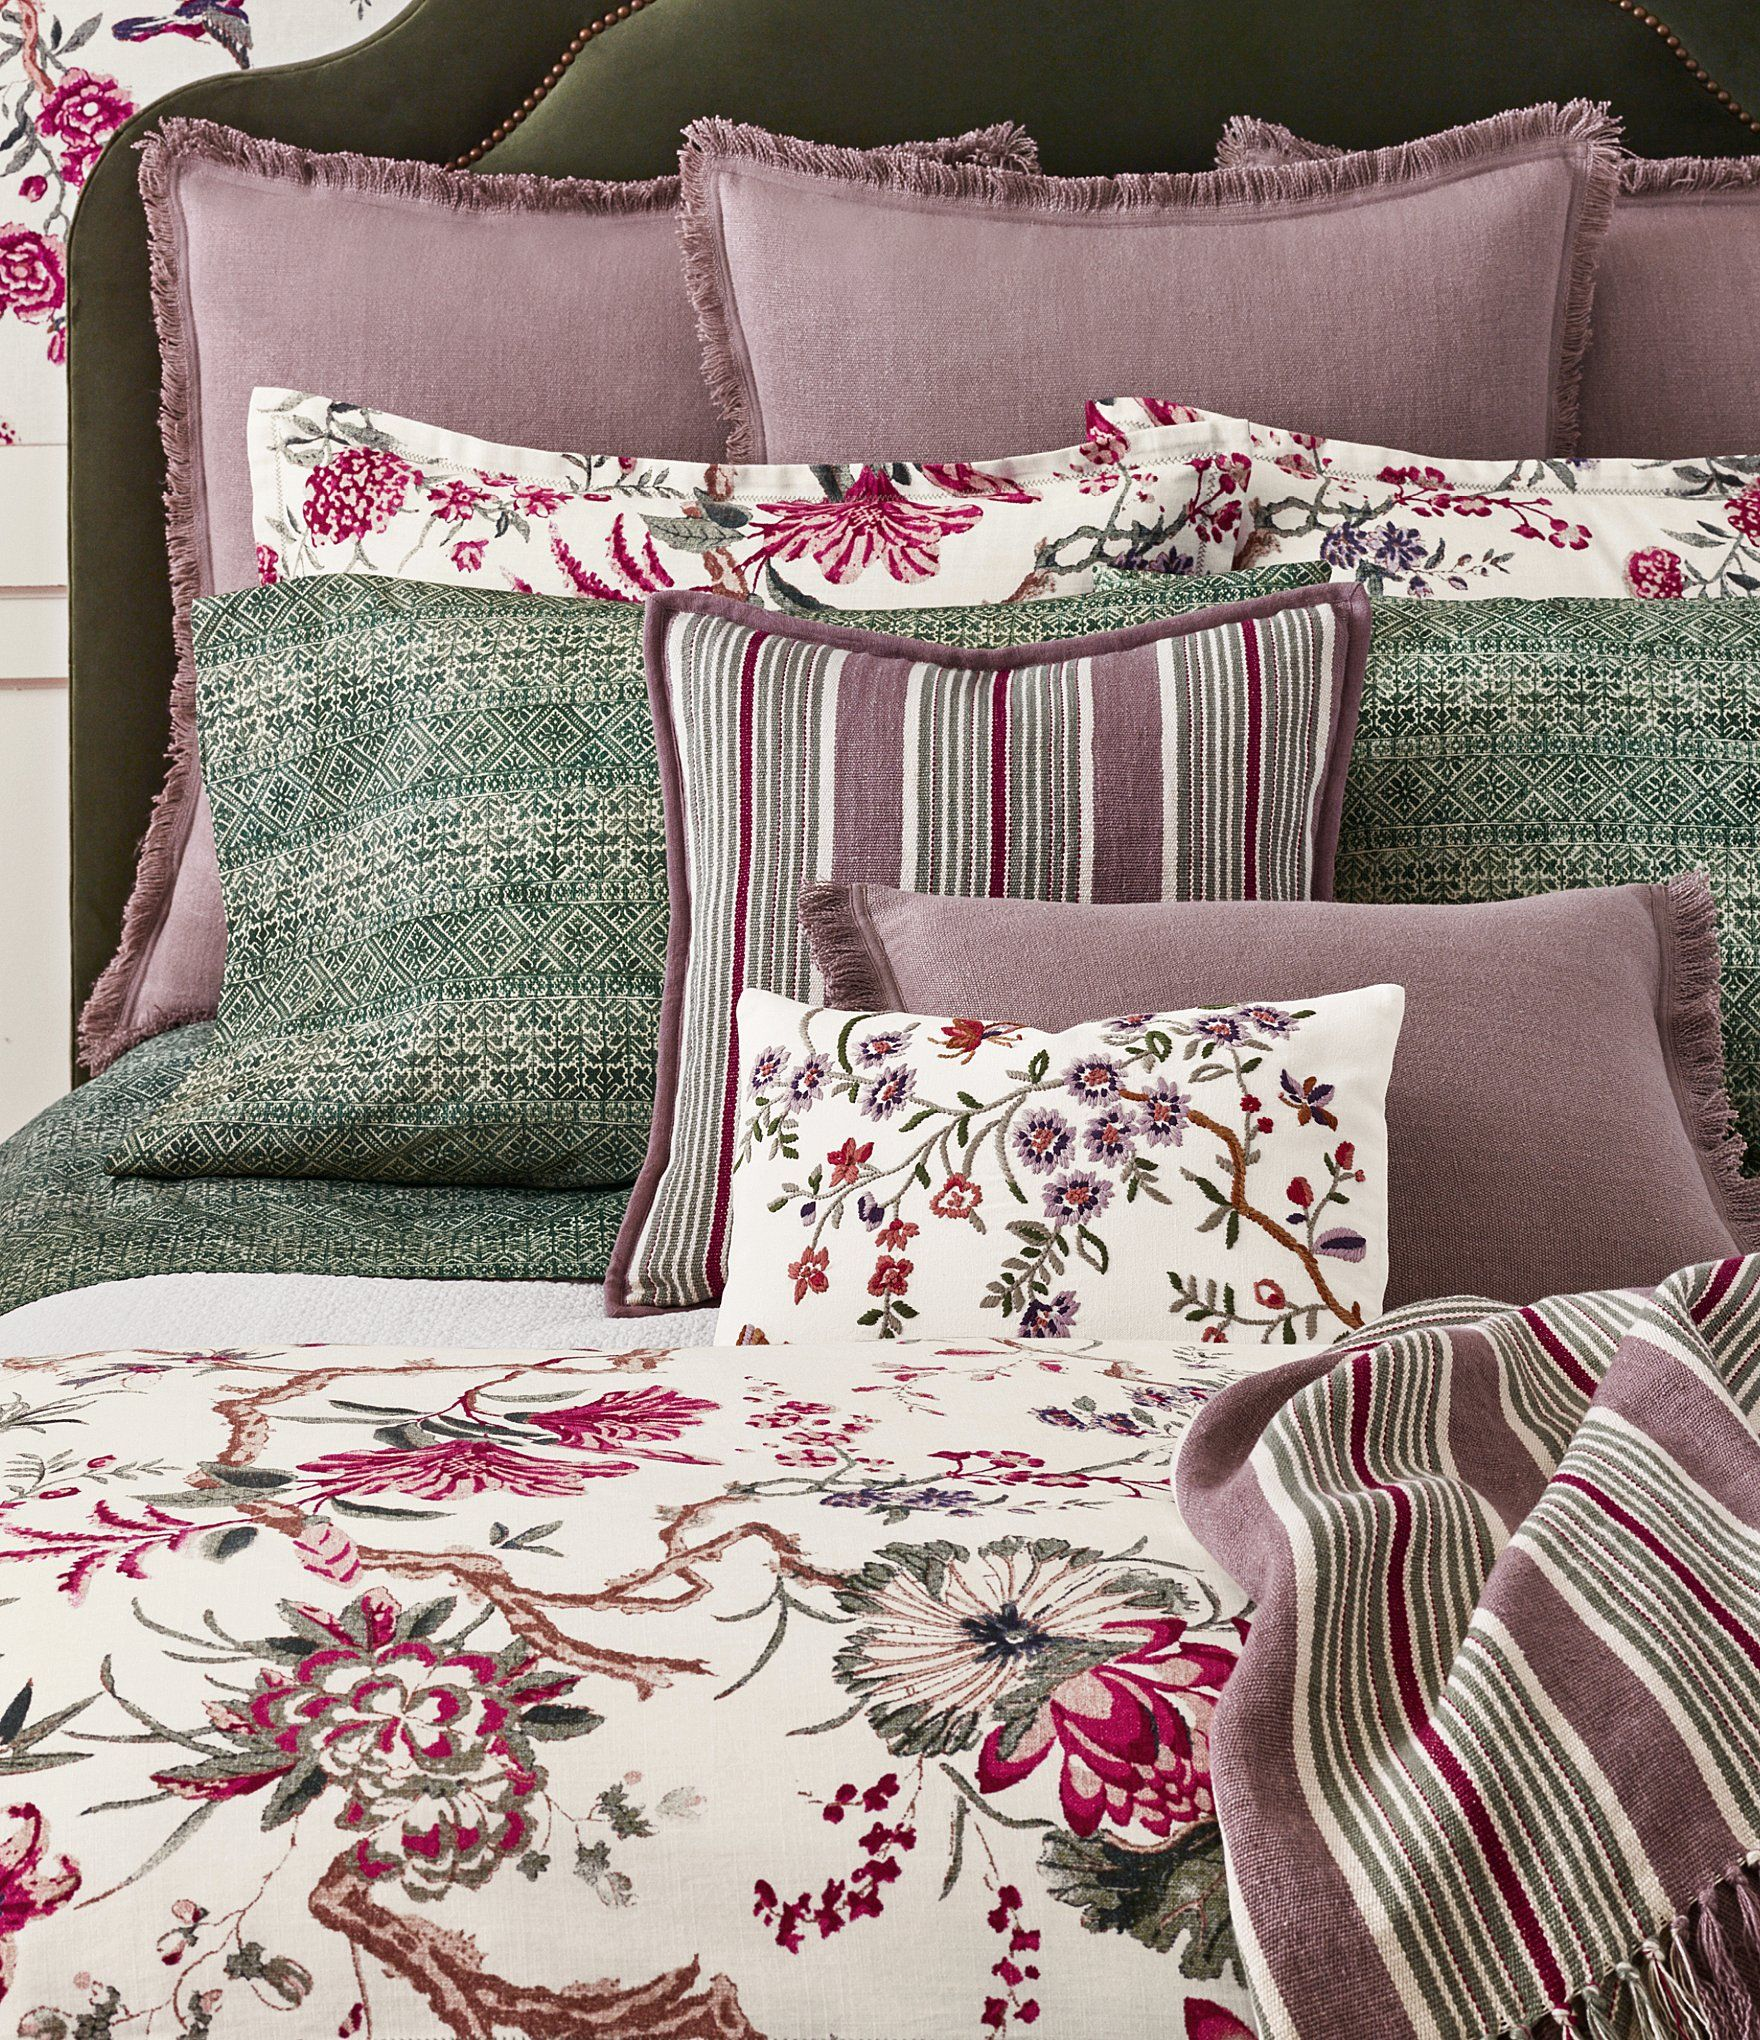 delectably sizes modern floral in set accessoires tara comforter wxl collection decor bedding amp yours accessories